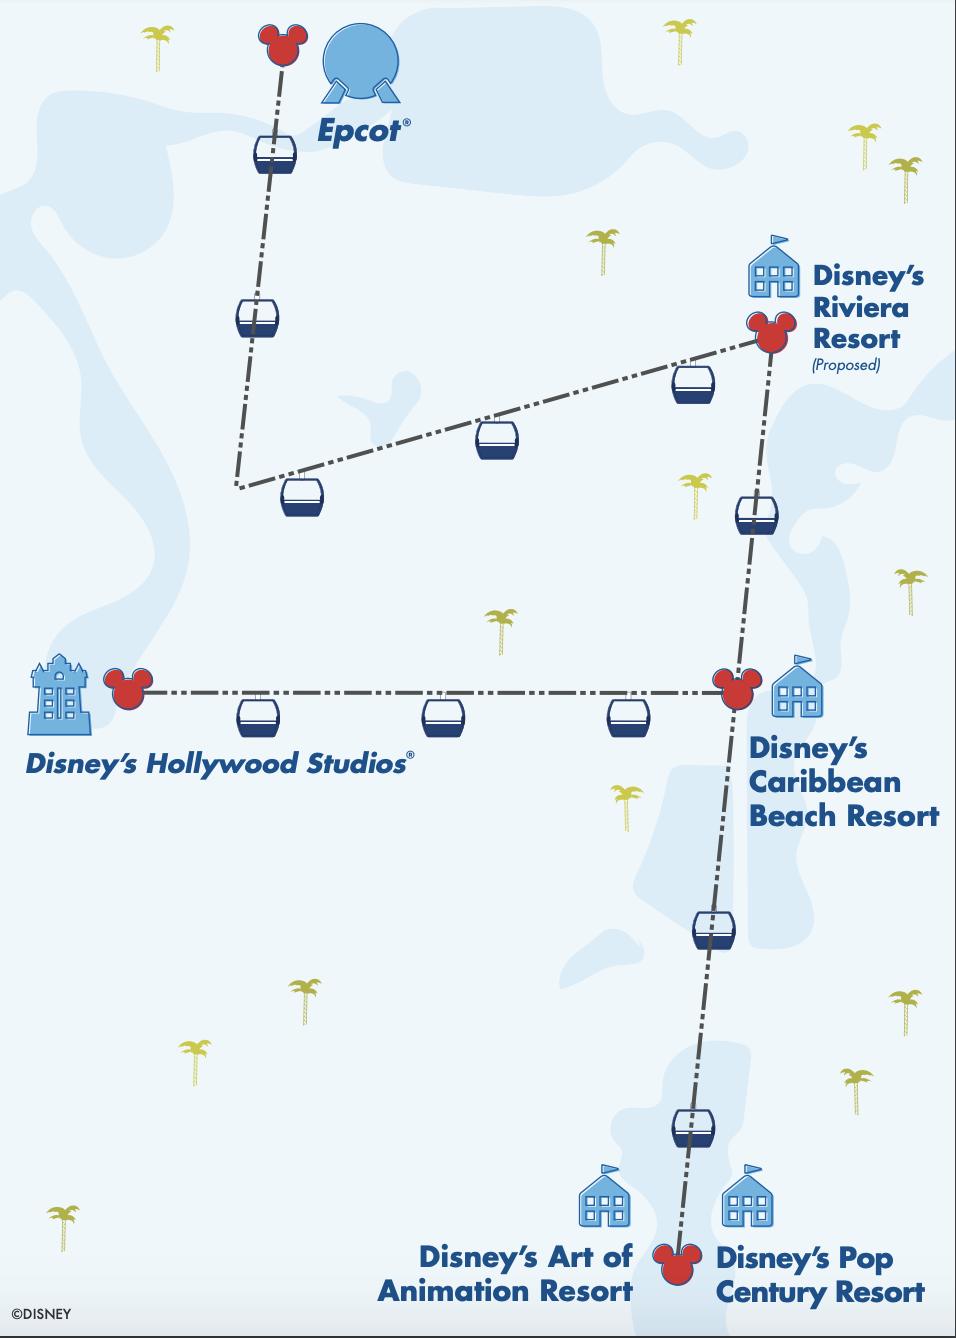 Walt Disney World Is Almost Ready To Launch A Major ...